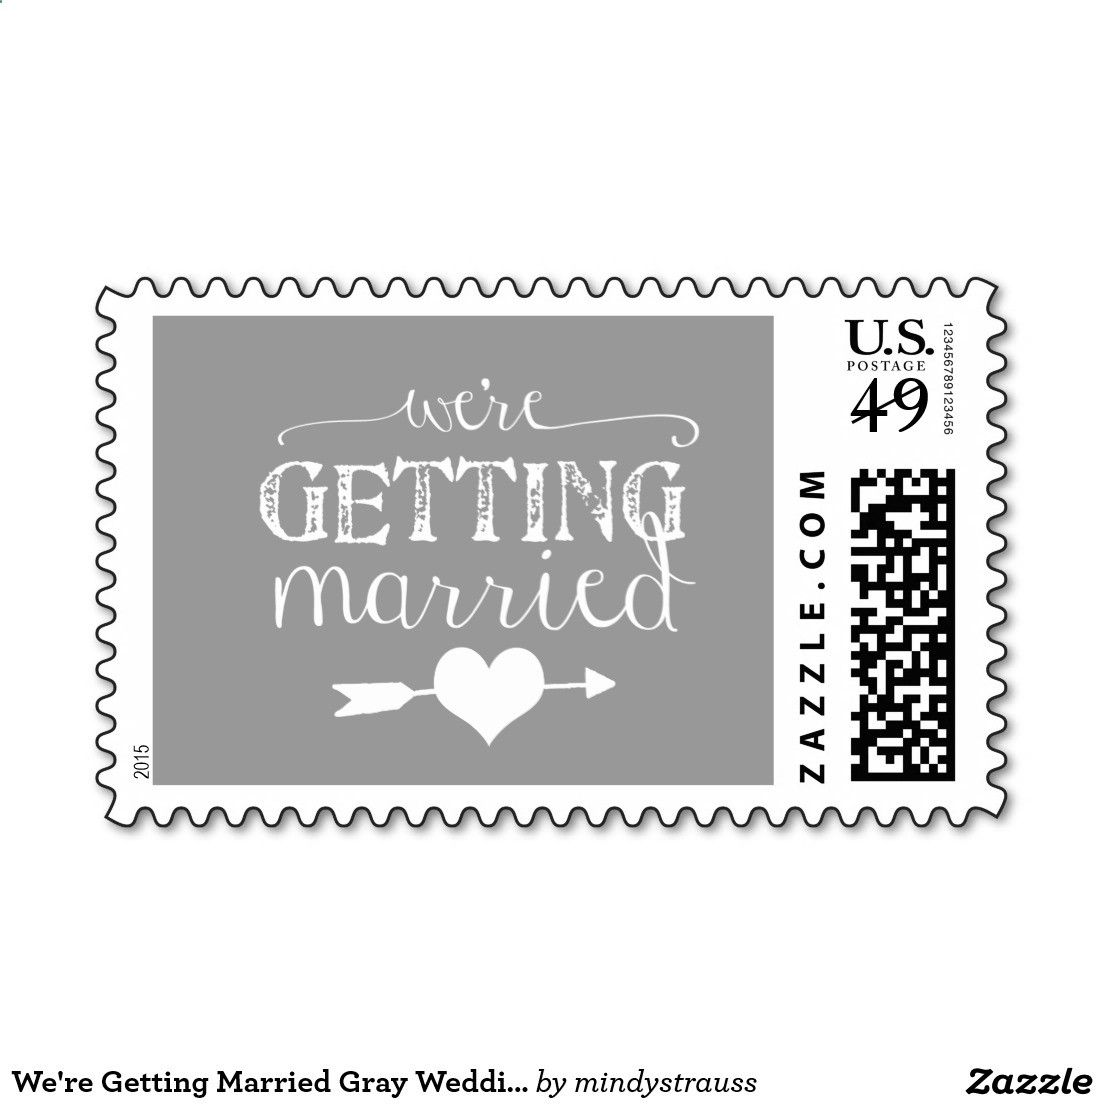 Were Getting Married Gray Wedding Postage with heart and arrow. Wedding postage stamp for engagement parties, wedding invations and jack and jill showers. Gray and white